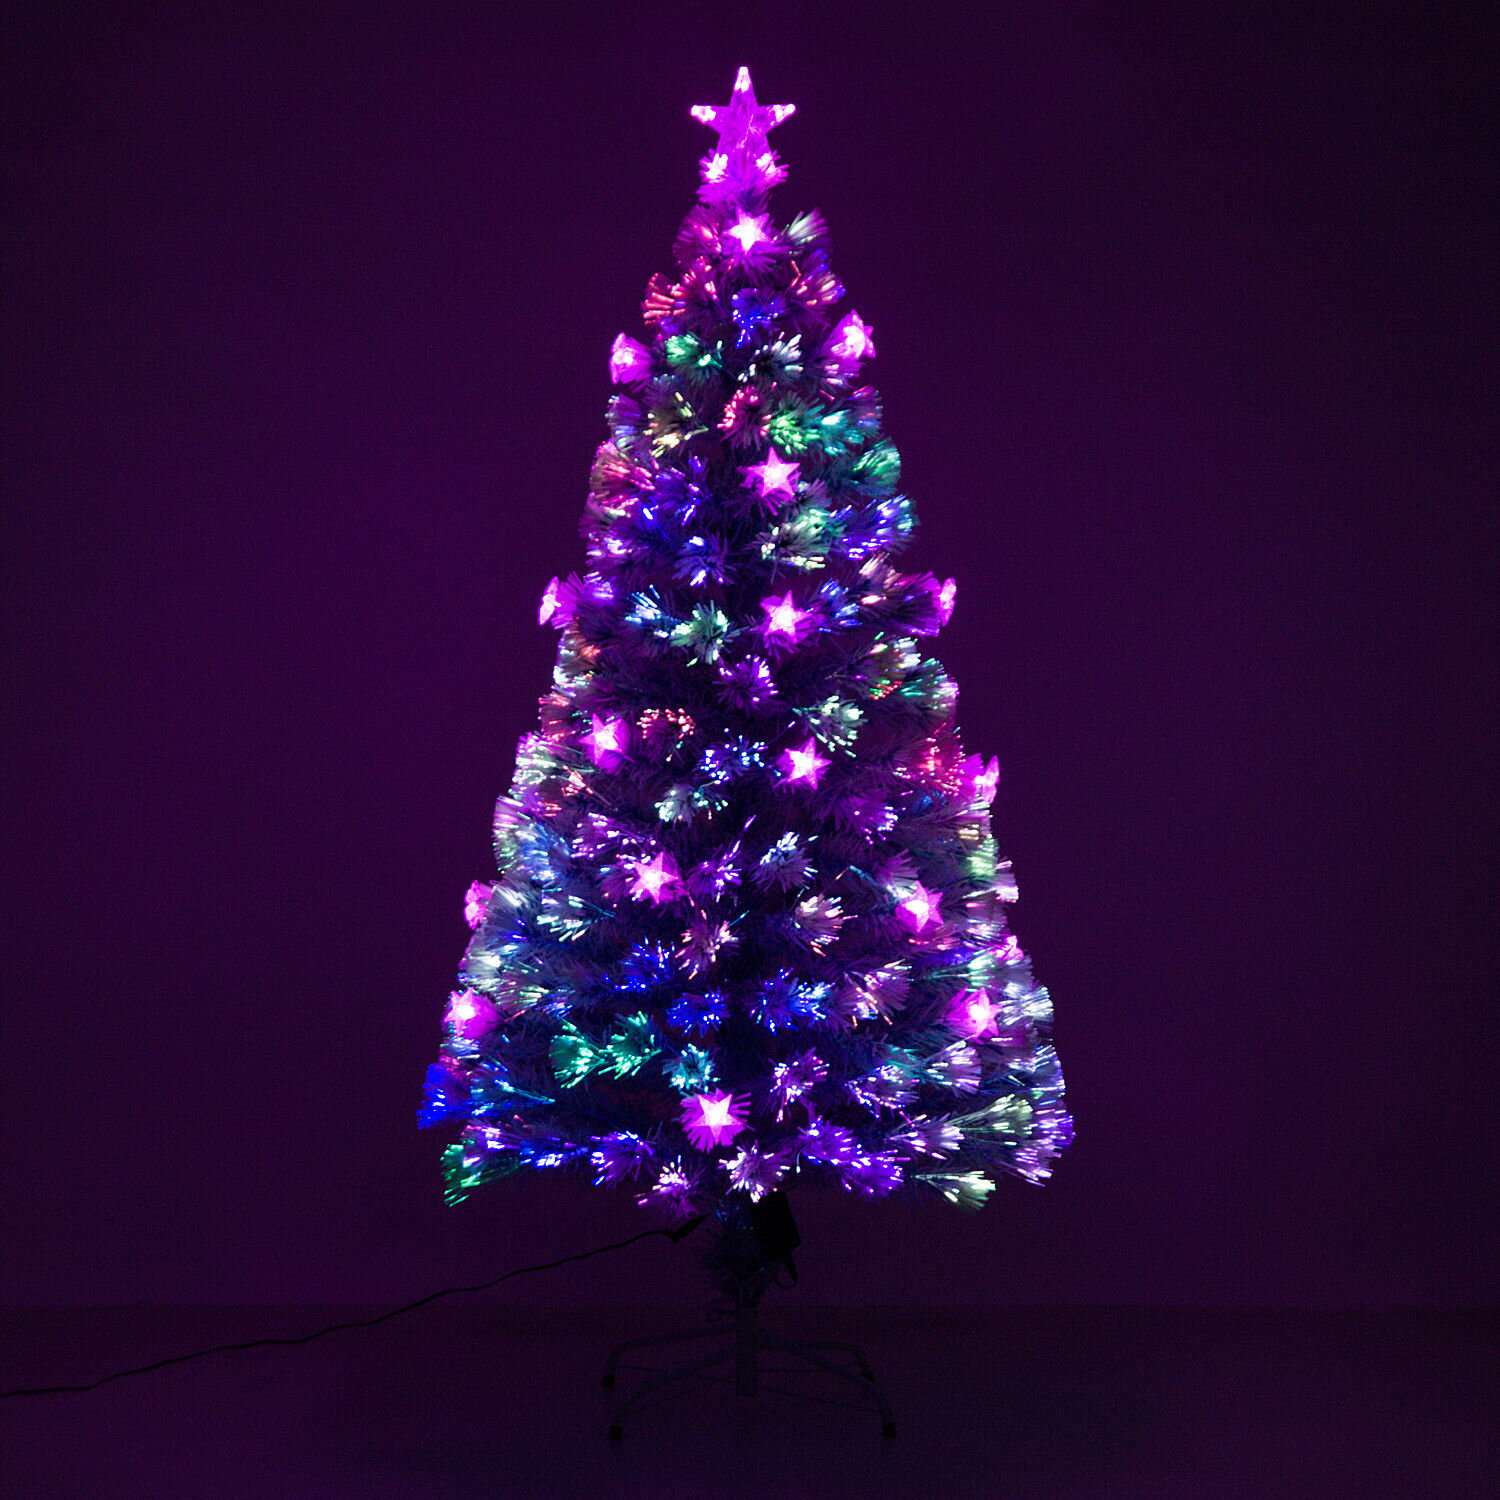 Purple Christmas Tree.Aosom 5 Artificial Holiday Fiber Optic Led Light Up Christmas Tree W 8 Light Settings And Stand White Blue Branches Rakuten Com